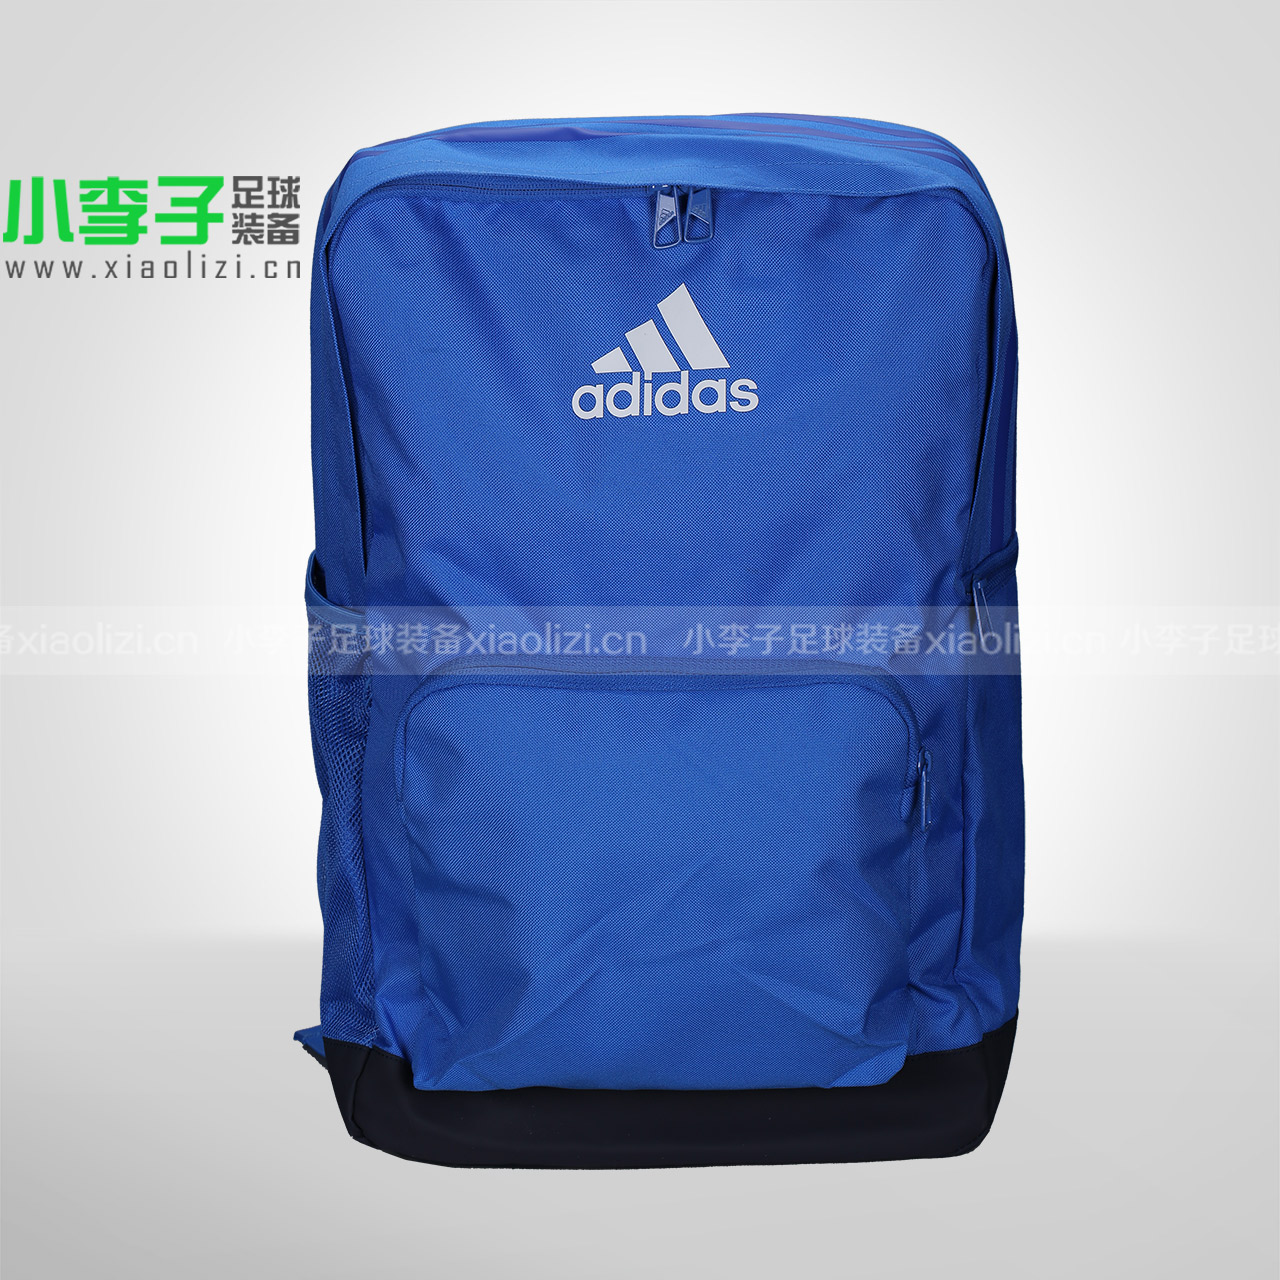 [The goods stop production and no stock]Xiao Li authentic Adidas Adidas football training equipment bag sports backpack leisure shoulder bag for men and women